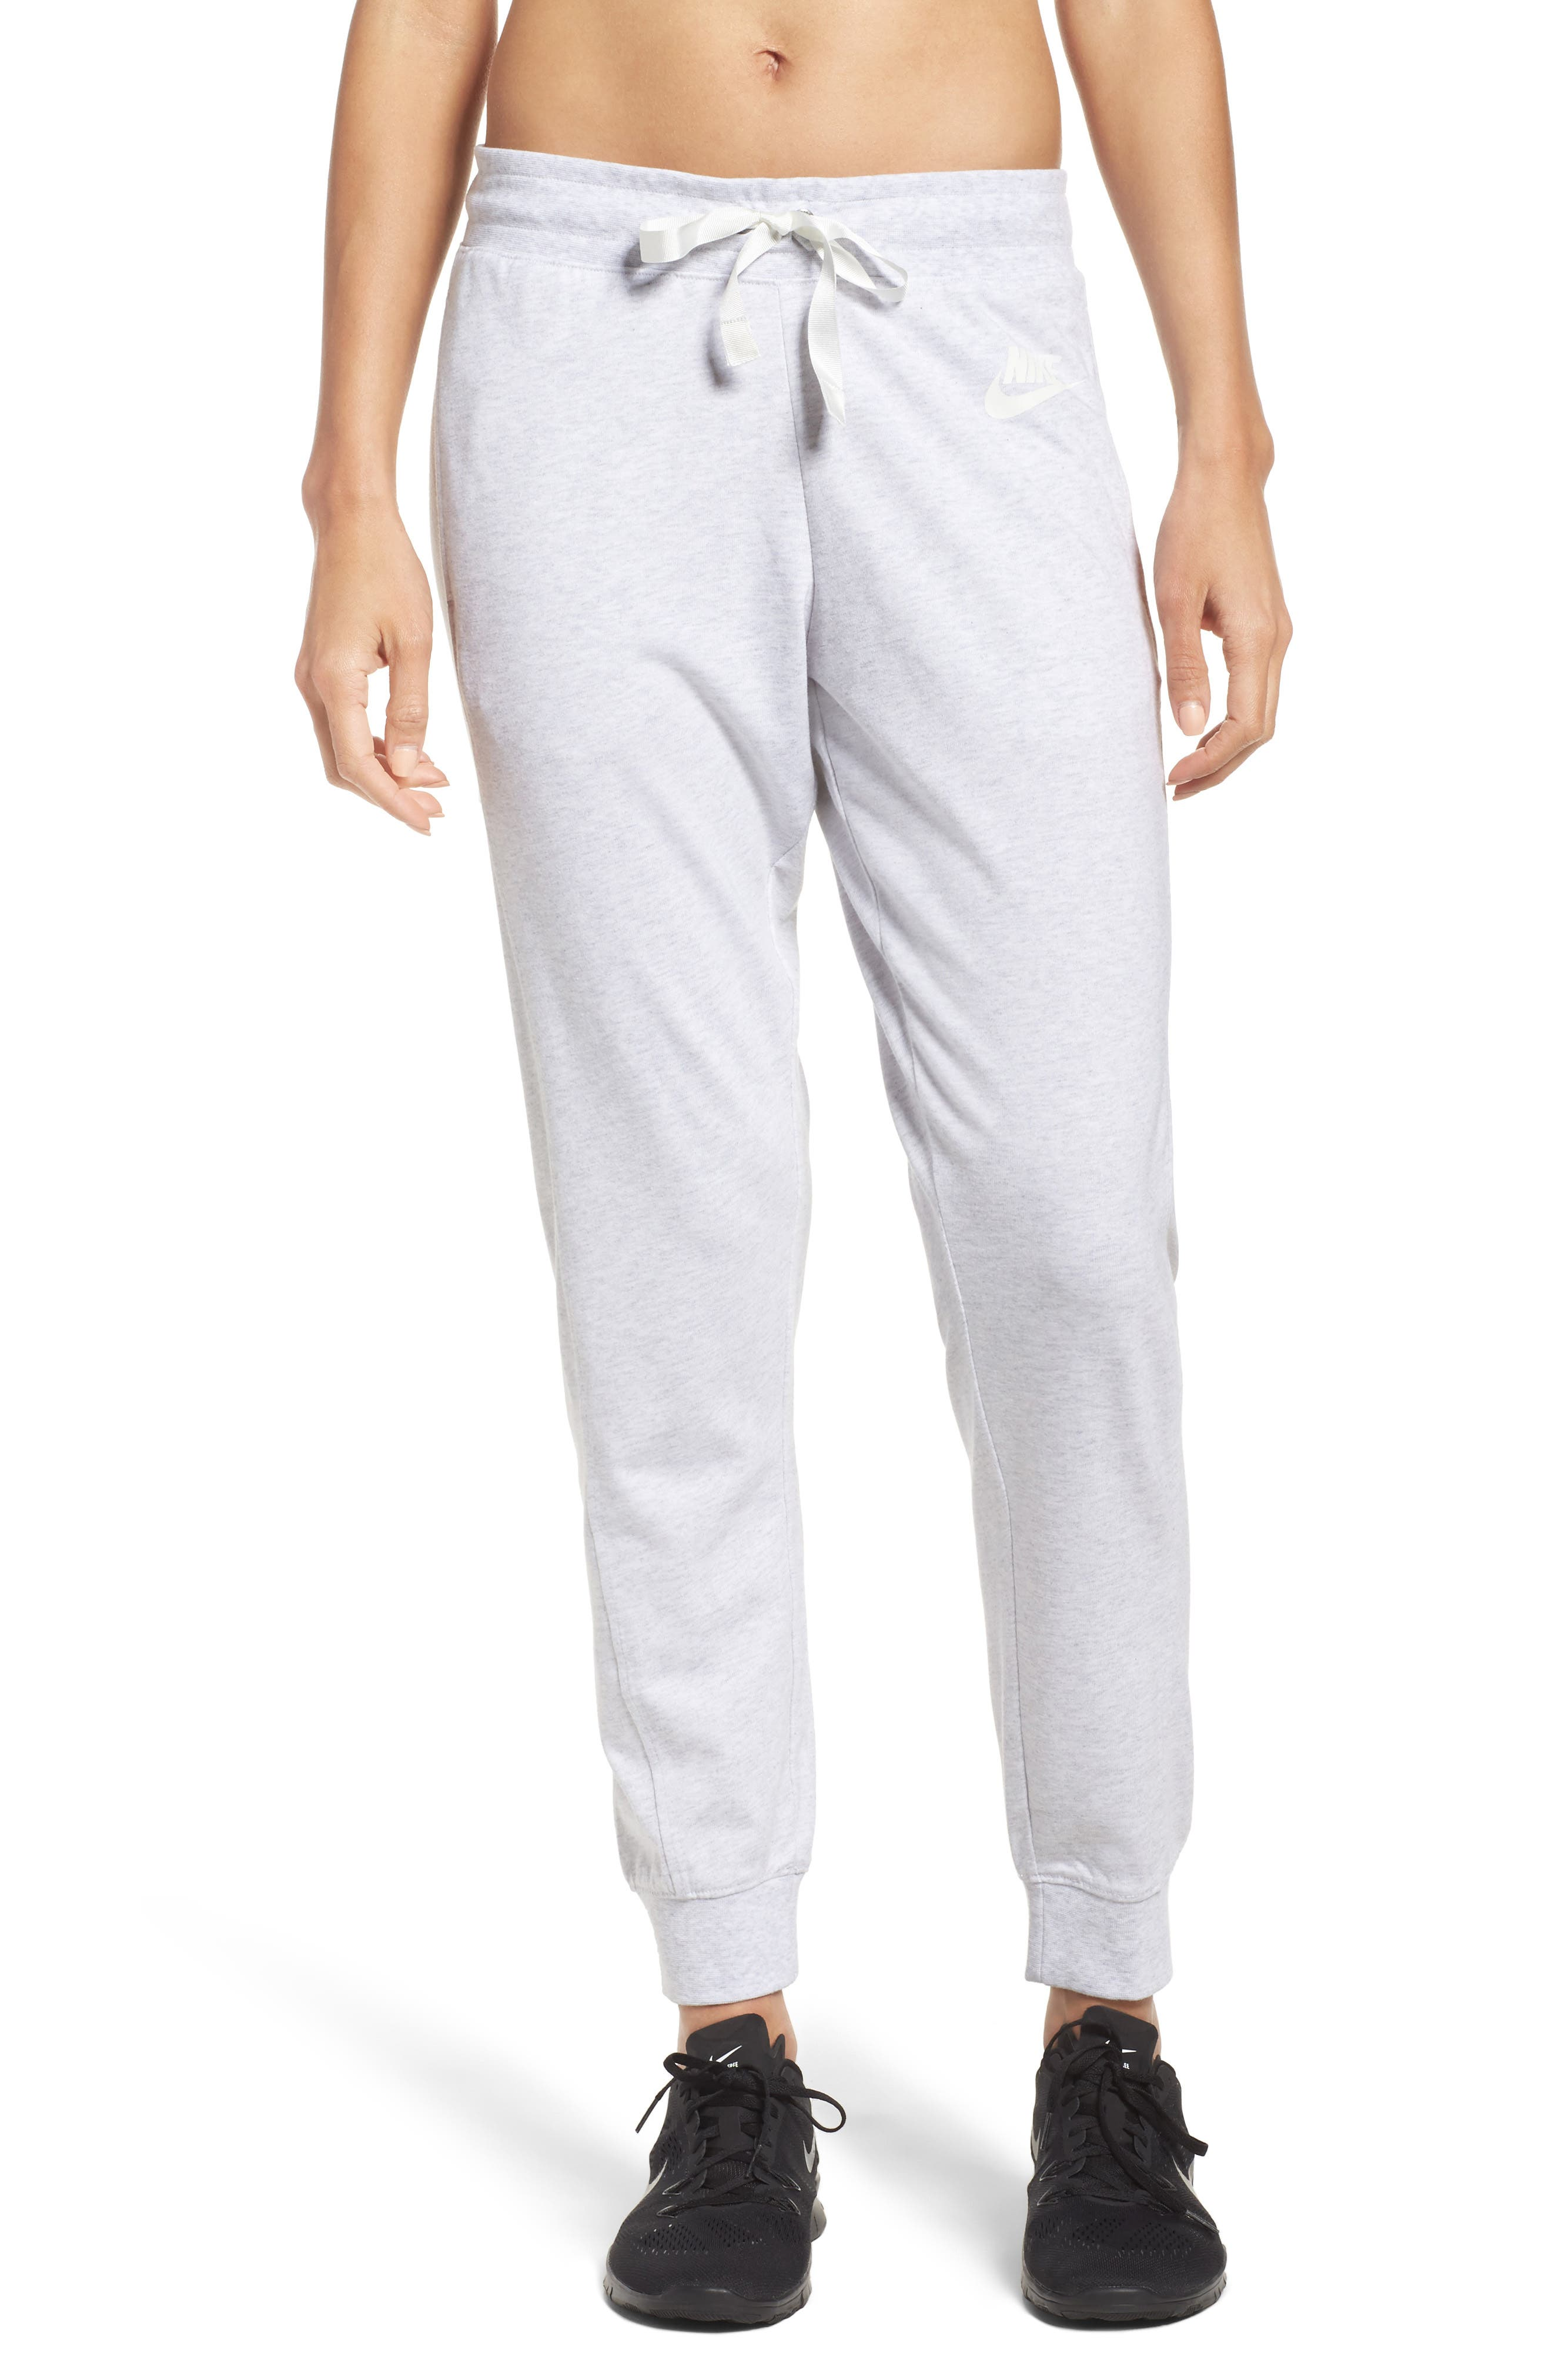 Nike Gym Sweatpants